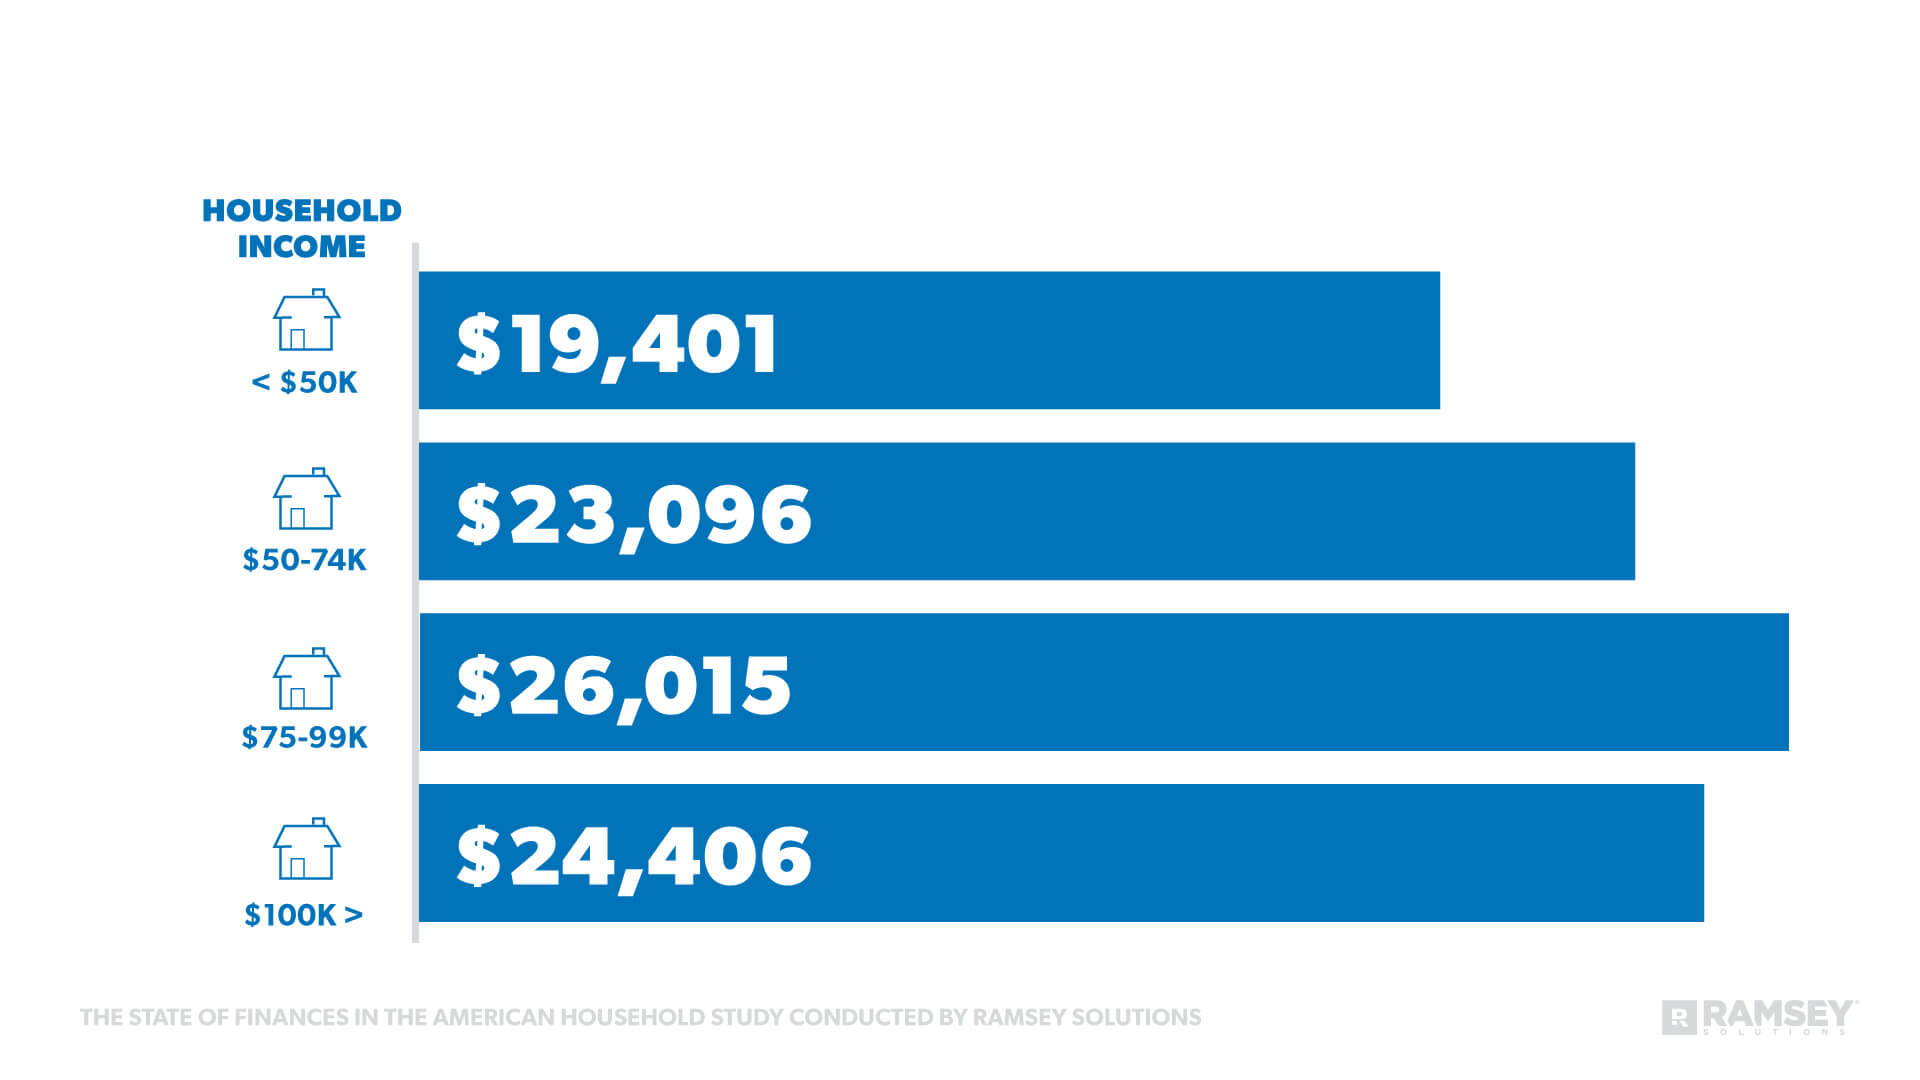 Average Consumer Debt by Household Income